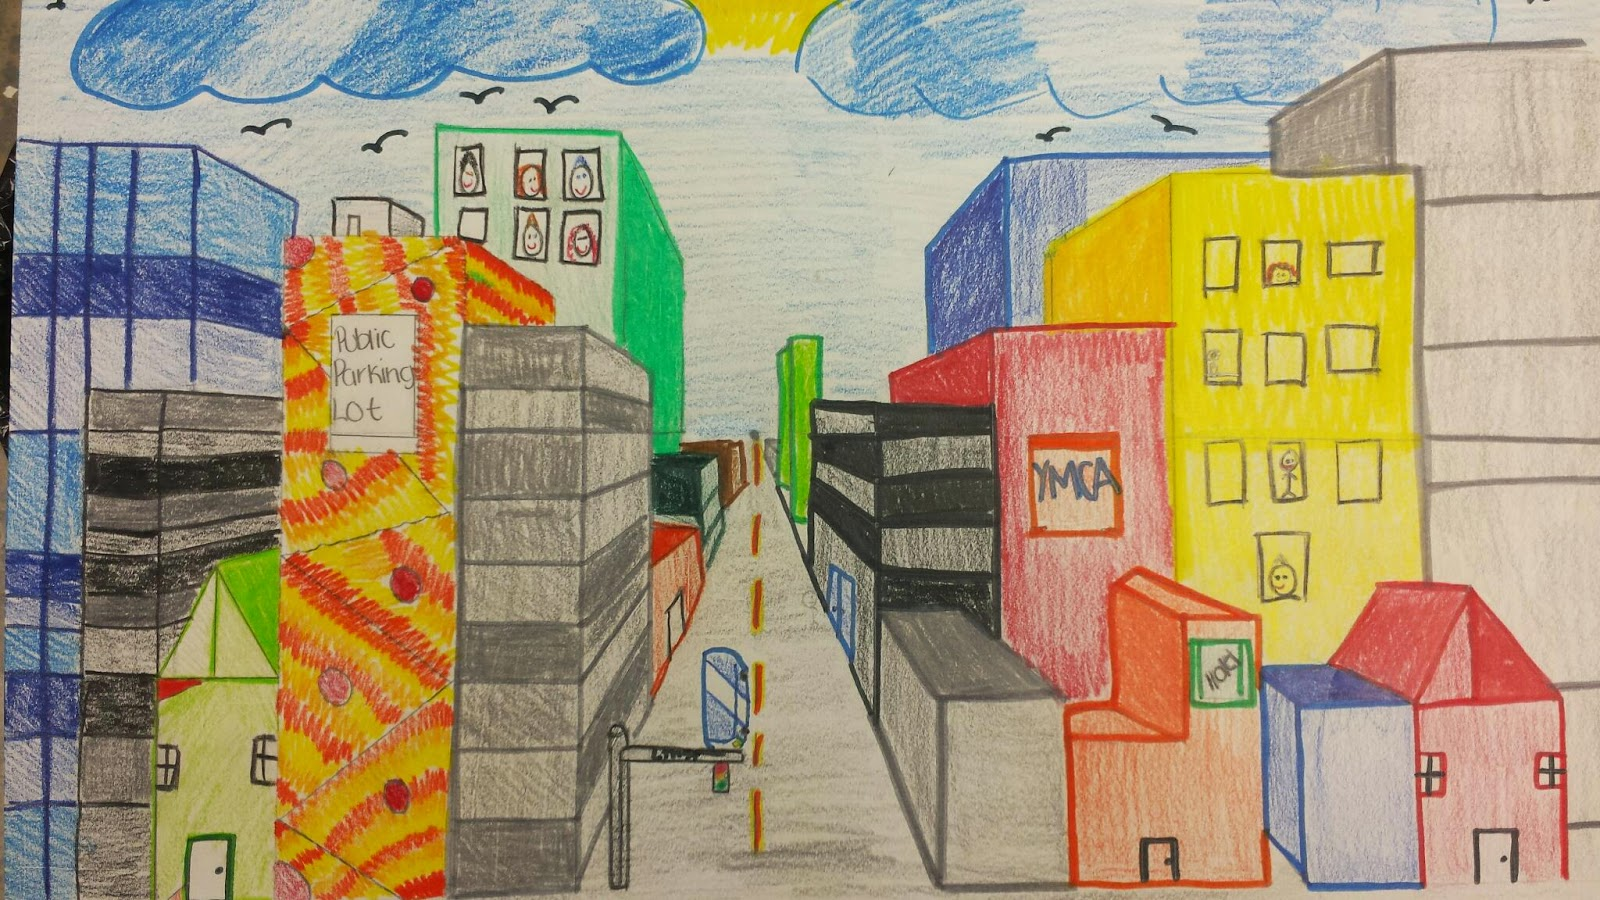 1600x900 Mr. Mintart 1 Point Perspective Cities And Rooms